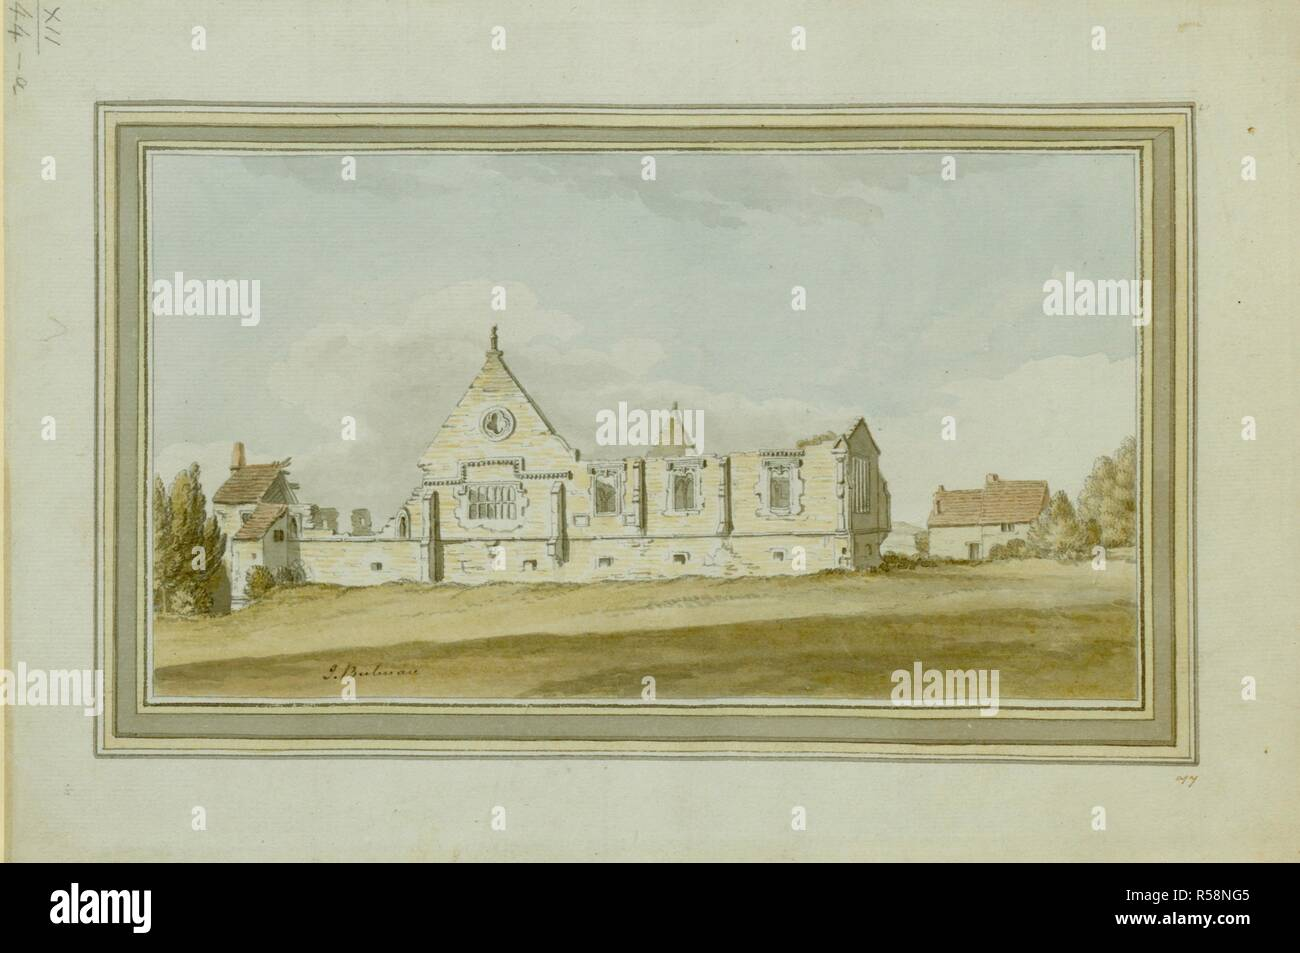 The gothic ruins of the Prior's House and chapel of Beaurepaire or Bear Park, built by Prior Bertram (1244-58), later destroyed by the Scots and rebuilt, c.1346, by Prior Fosser. South View of Bearpark near Durham 1783. 1783. Source: Maps K.Top.12.44.a. Language: English. Stock Photo